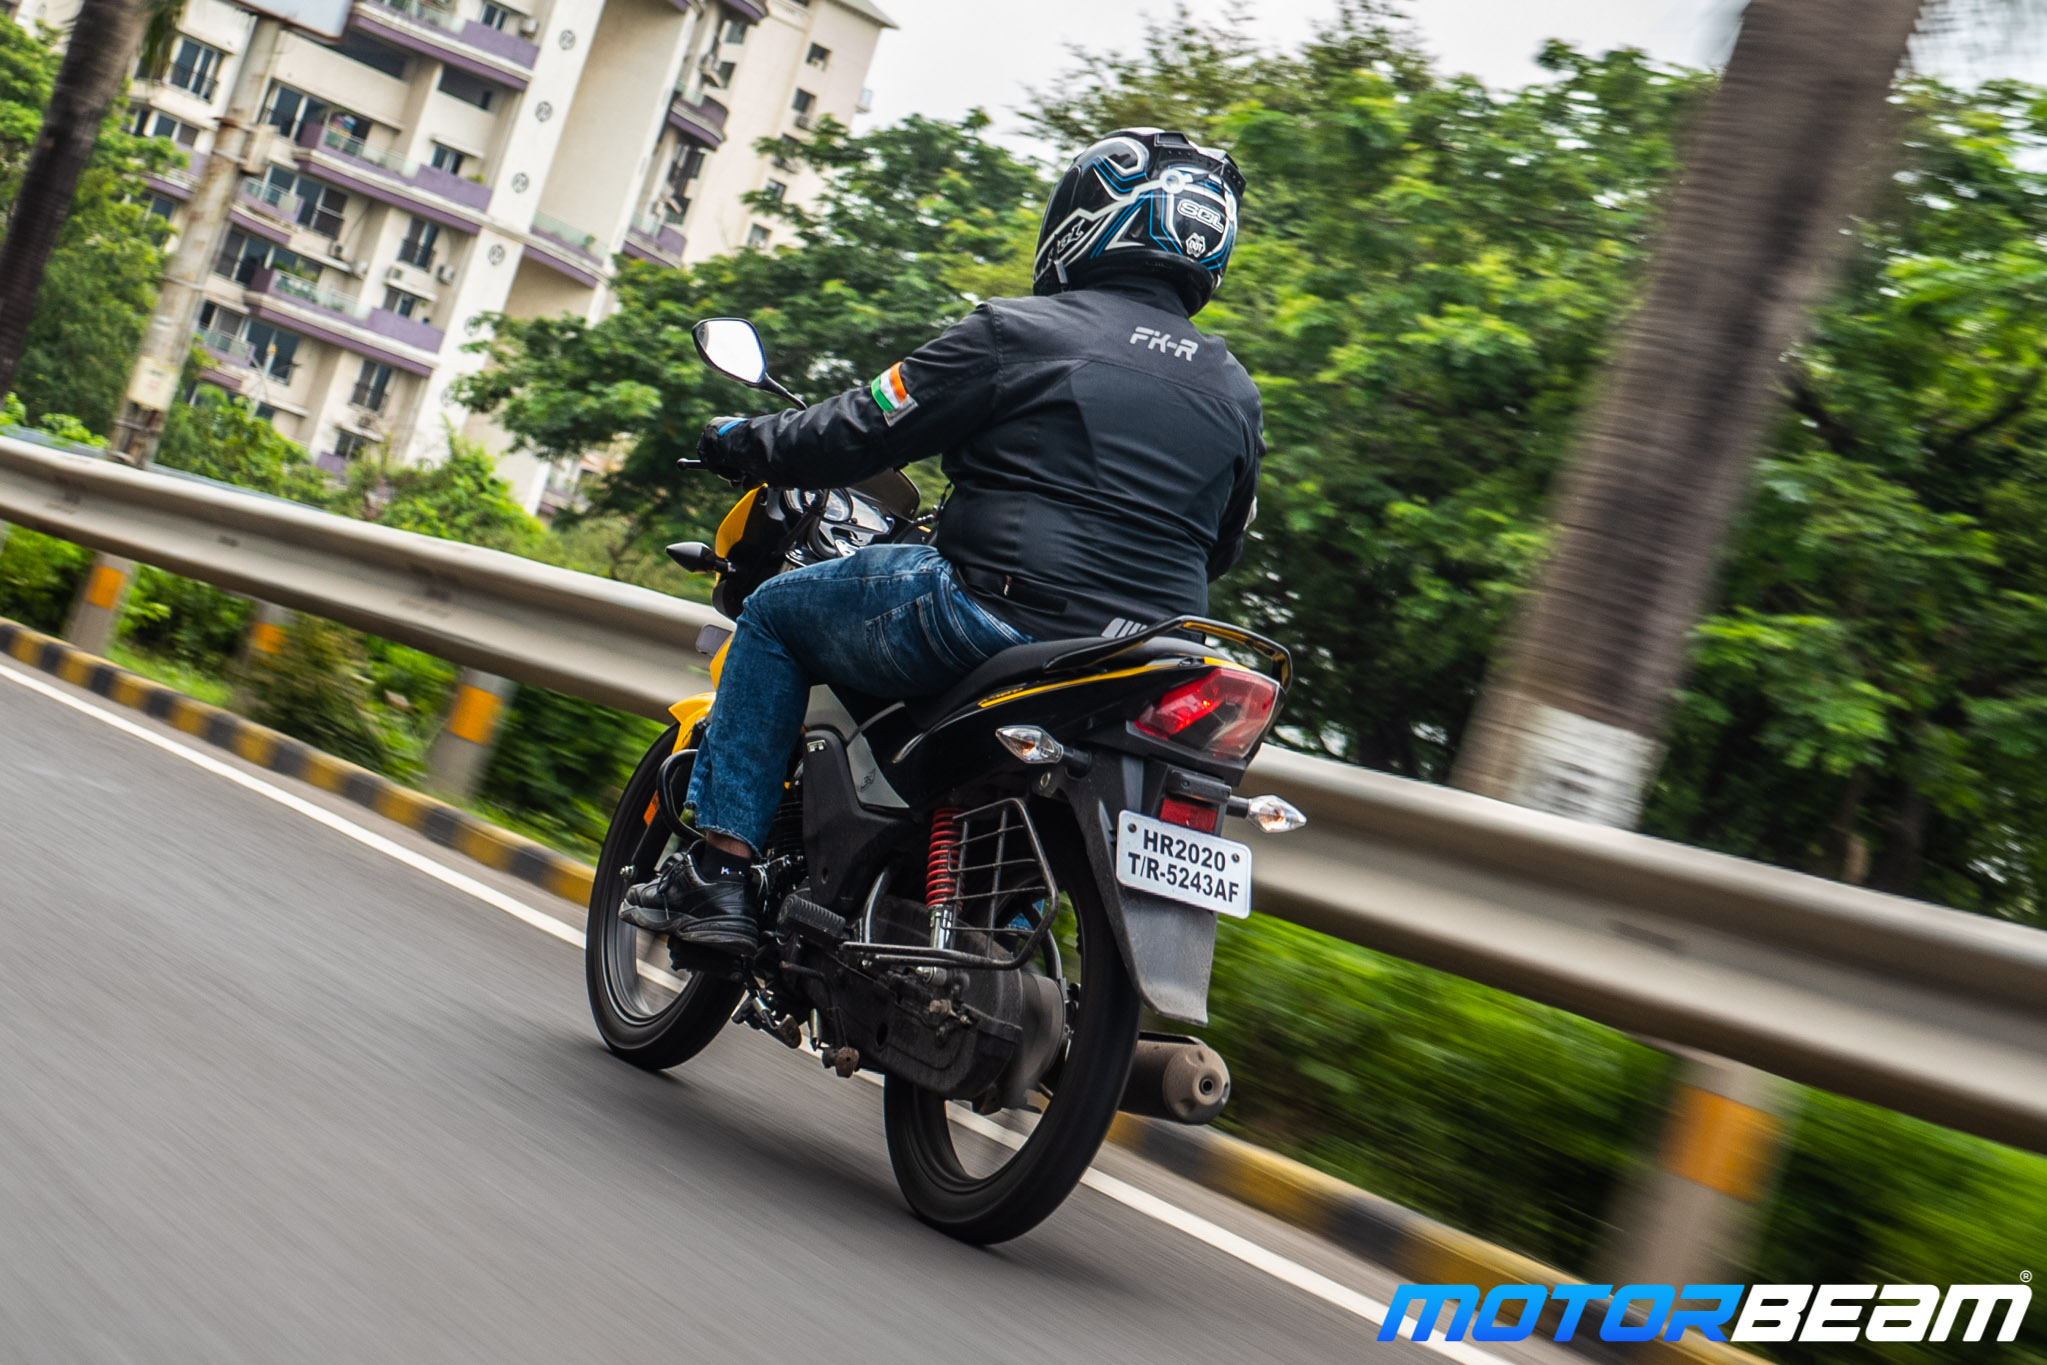 2020 Hero Passion Pro Review 4